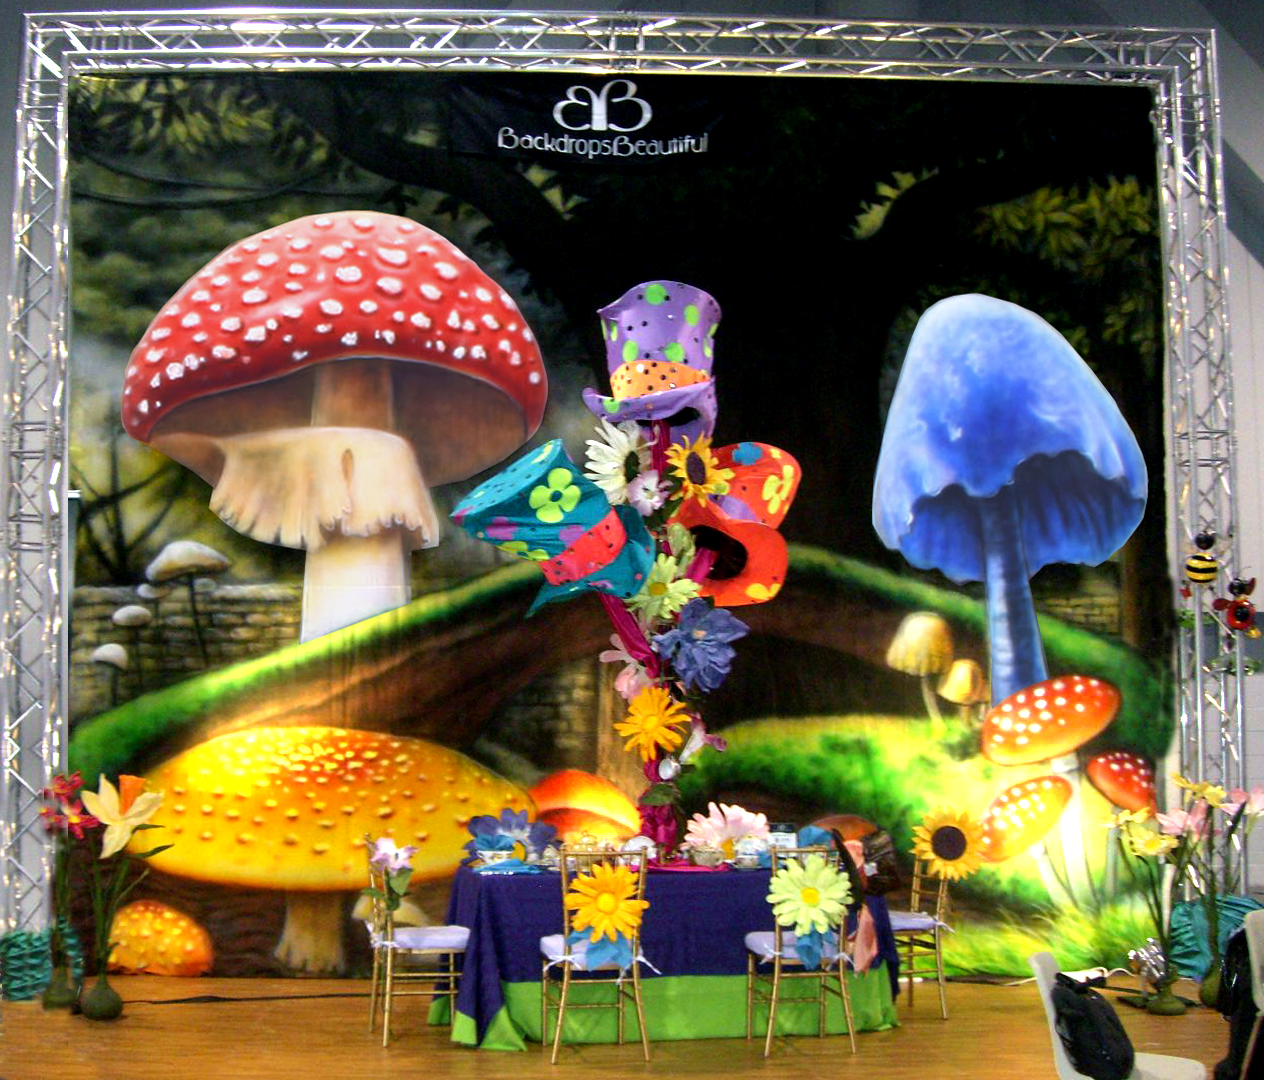 alice in wonderland backdrops bing images alice in wonderland alice in wonderland backdrops bing images alice in wonderland beautiful search and events